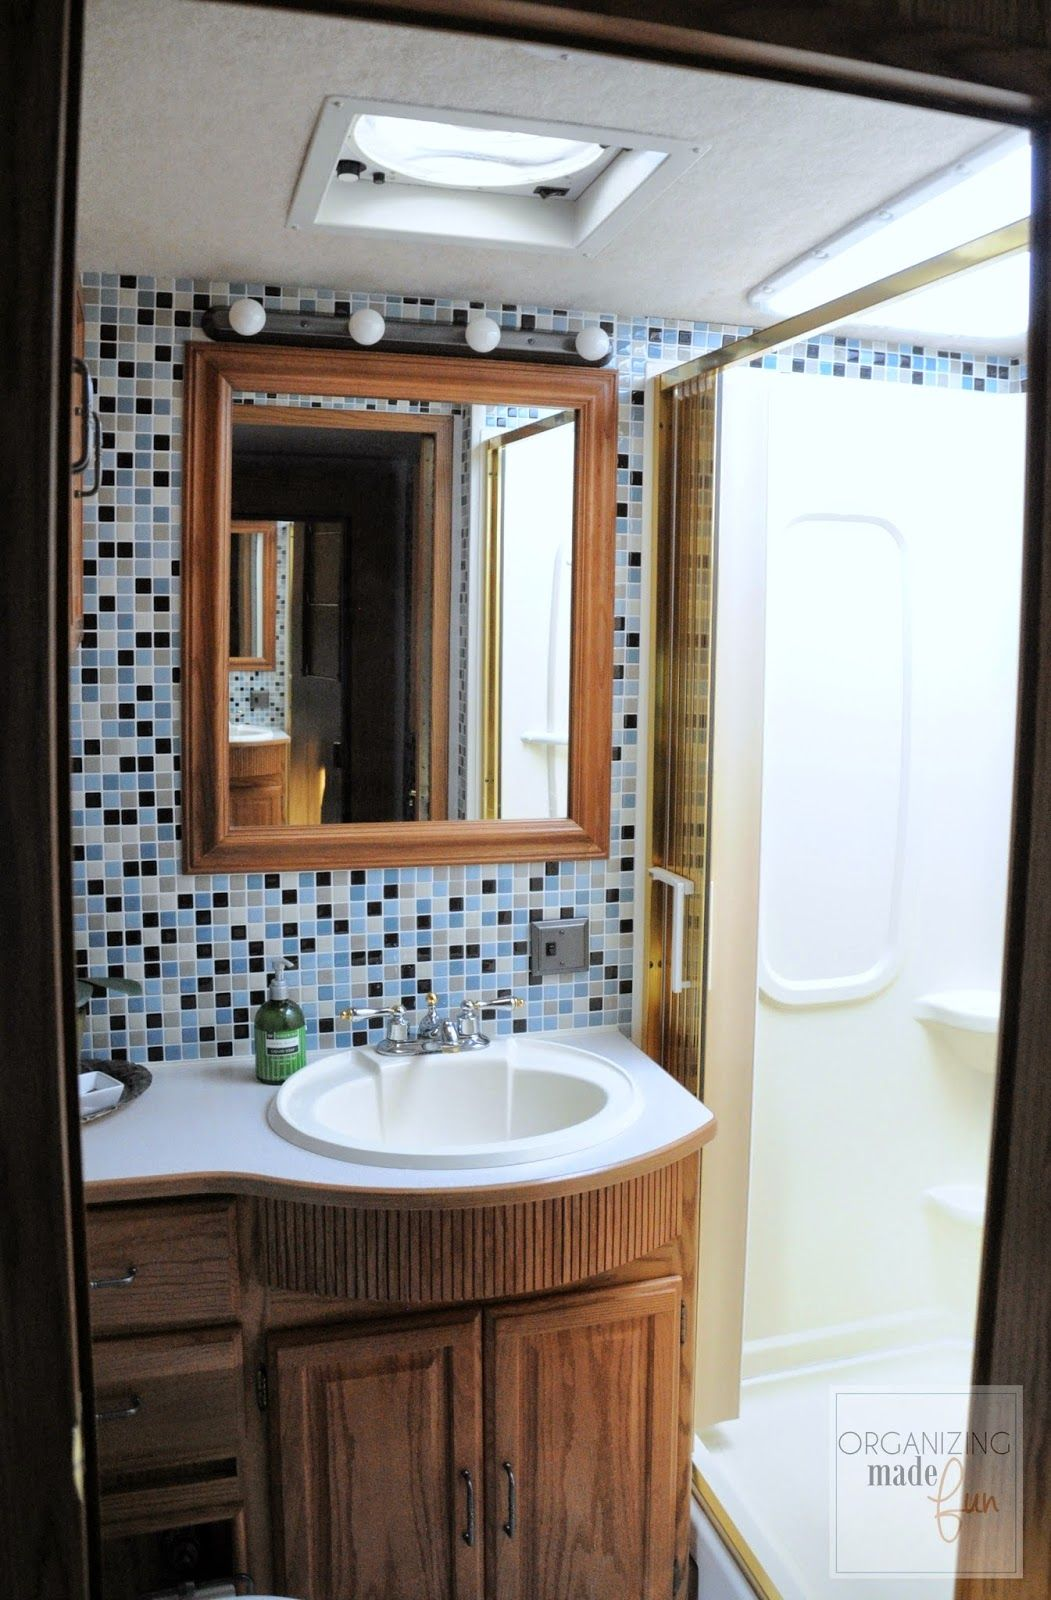 RV Bathroom After Tiled With Smart Tiles OrganizingMadeFun - Small trailer with bathroom for bathroom decor ideas